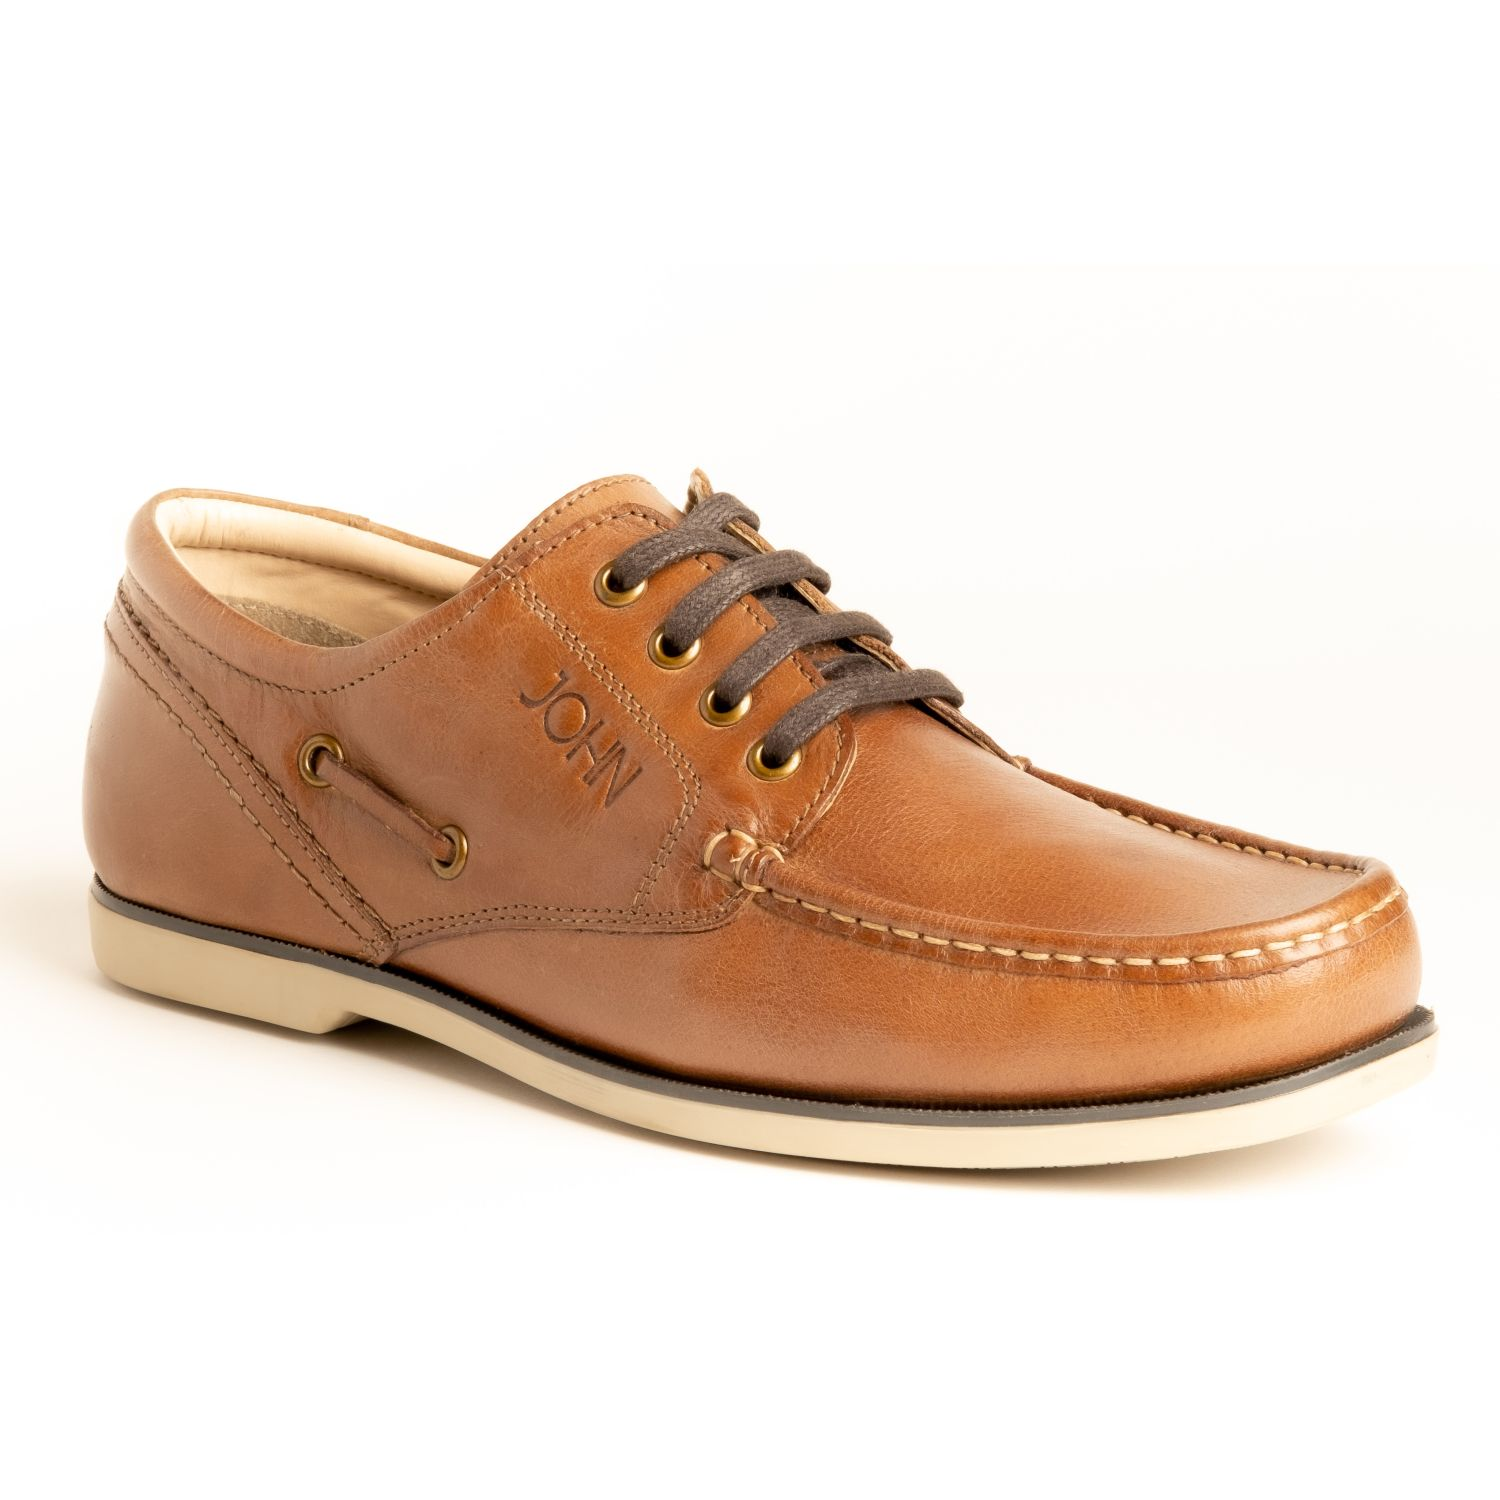 JOHN HOLDEN JUMBO Habano Oxfords